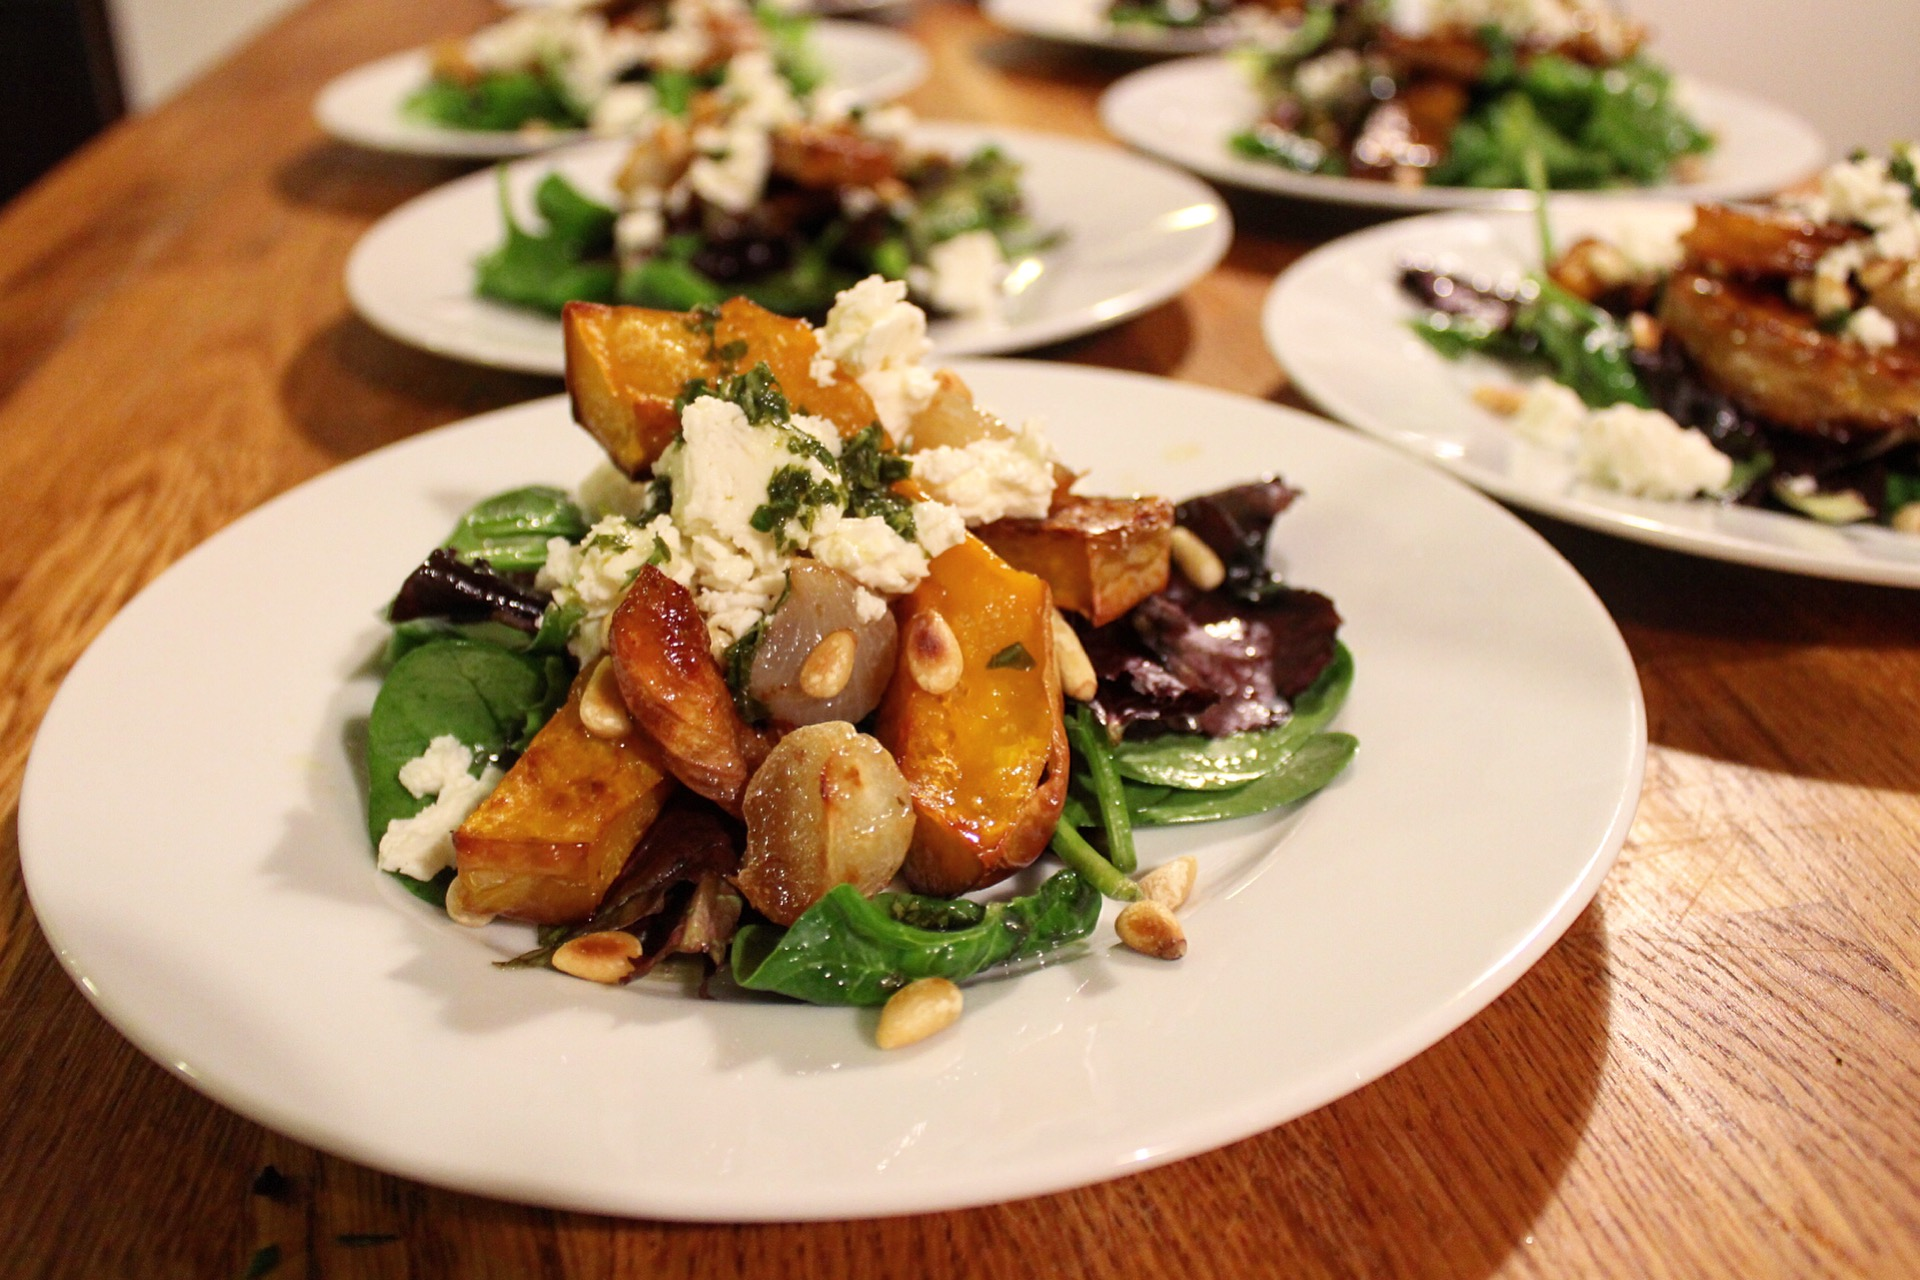 Squash and shallot salad